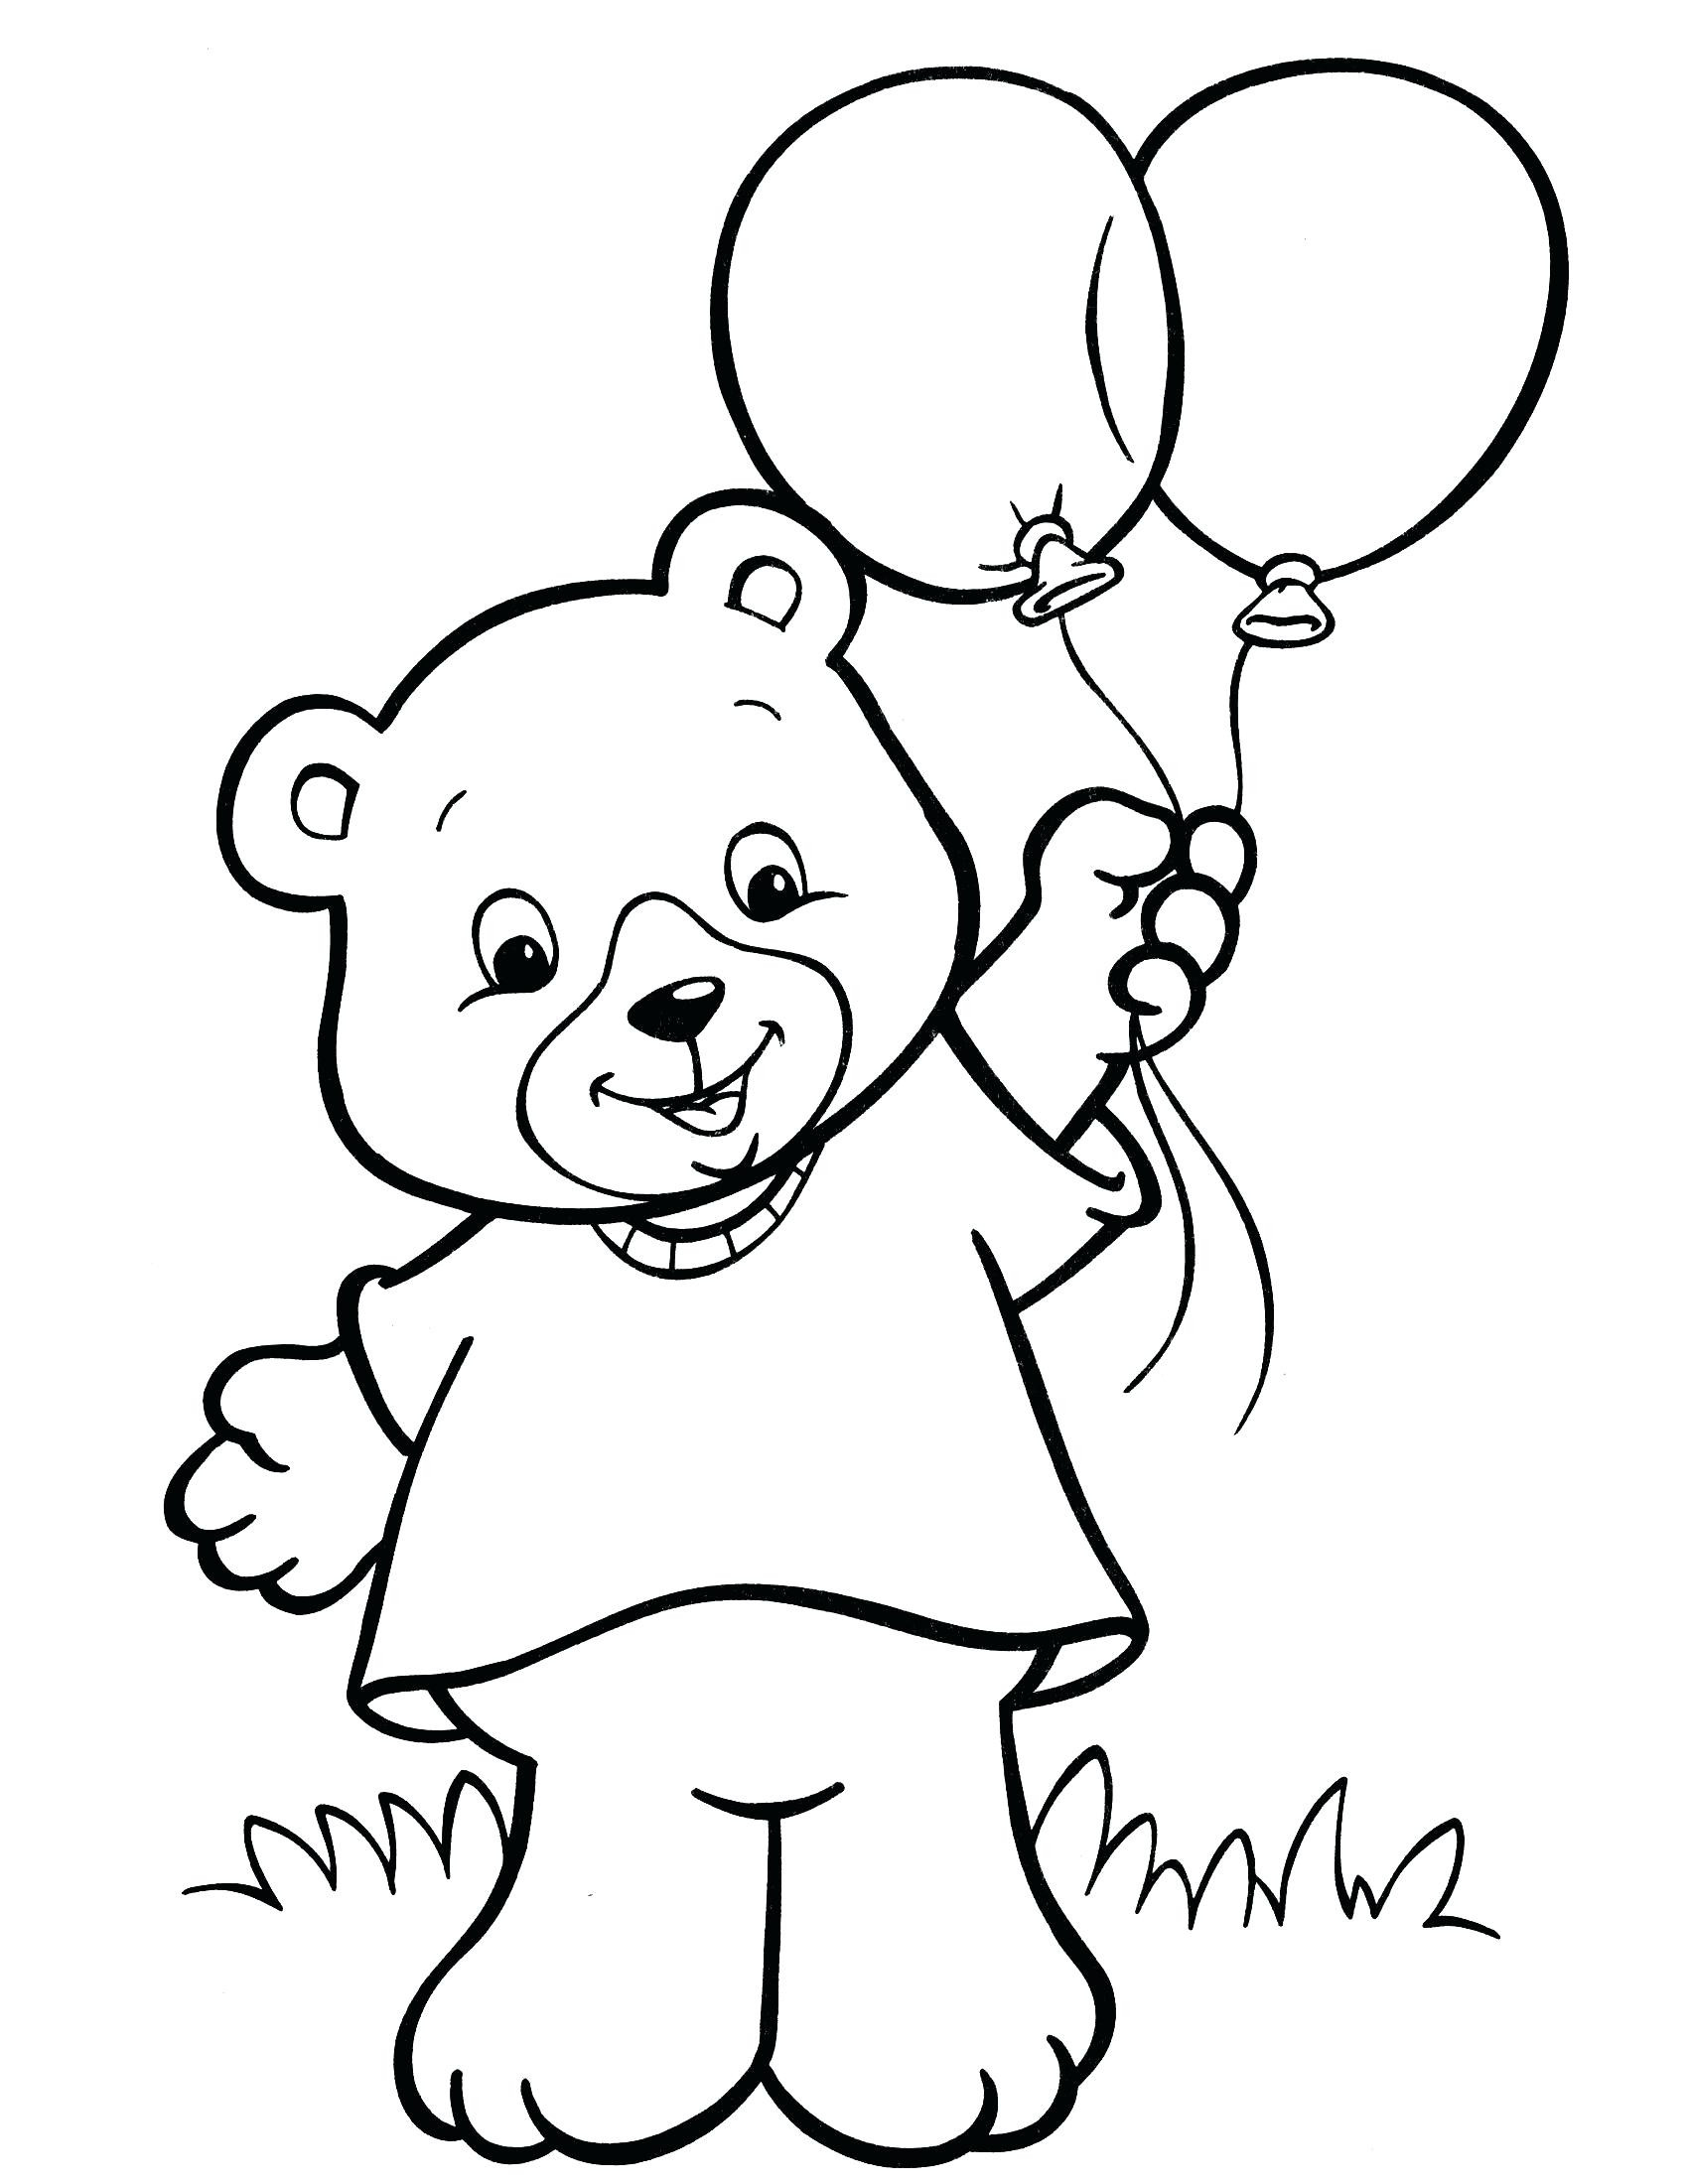 Excellent Free Printable Coloring Pages For 2 Year Olds #651 - Free Printable Coloring Pages For 2 Year Olds